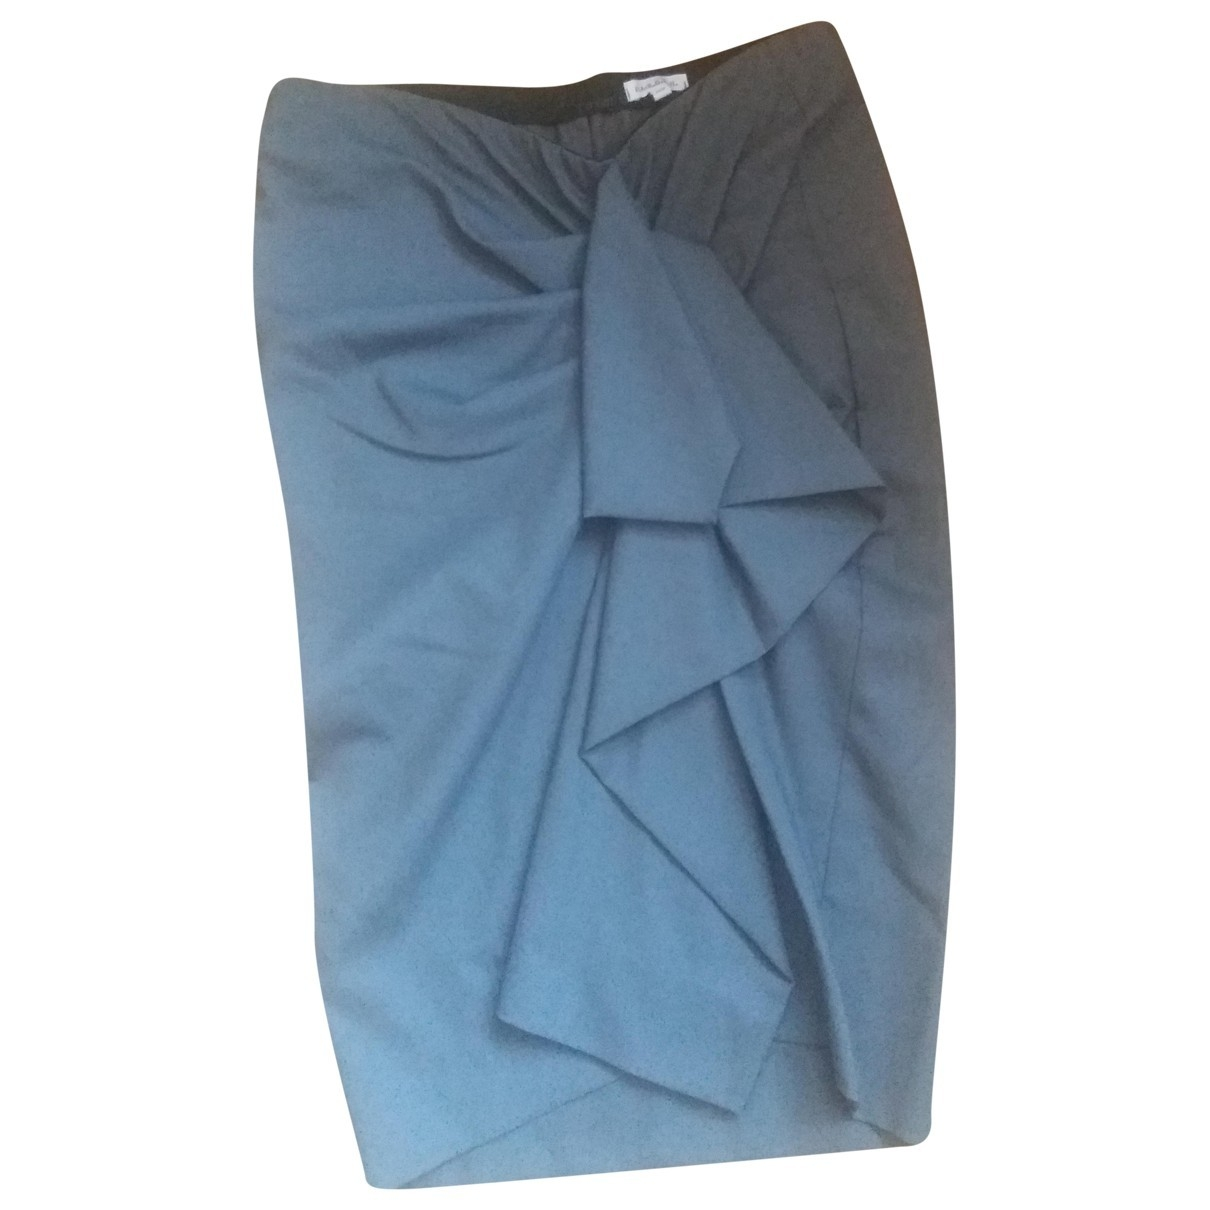 Parosh \N Wool skirt for Women XS International